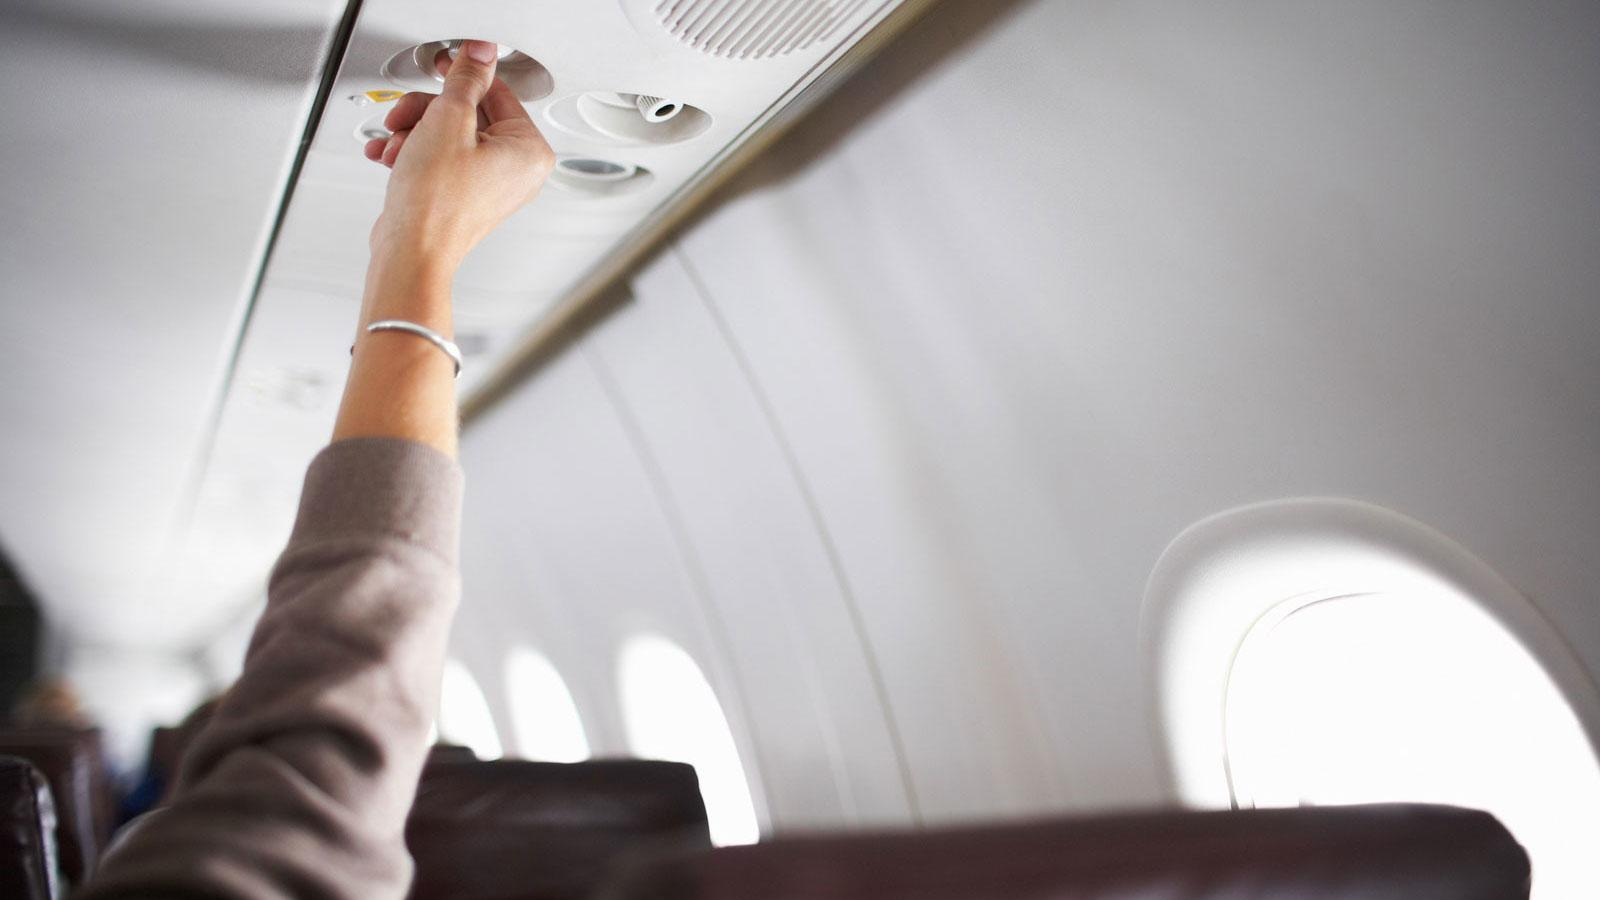 WATCH: Why You Should Always Turn on the Air Vent Above You During a Flight